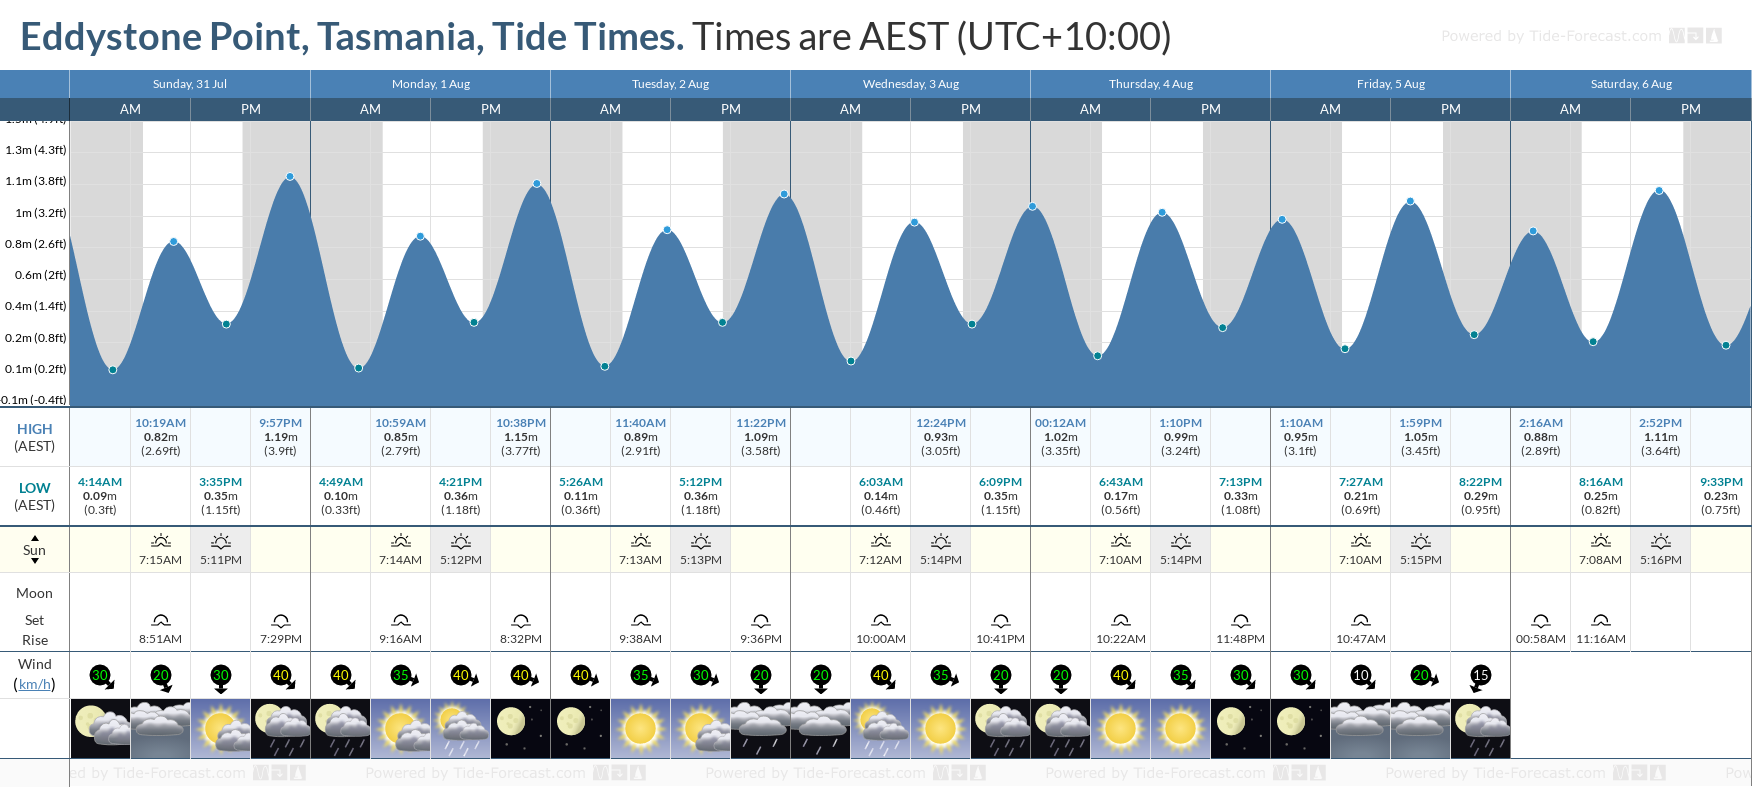 Eddystone Point, Tasmania Tide Chart including high and low tide tide times for the next 7 days